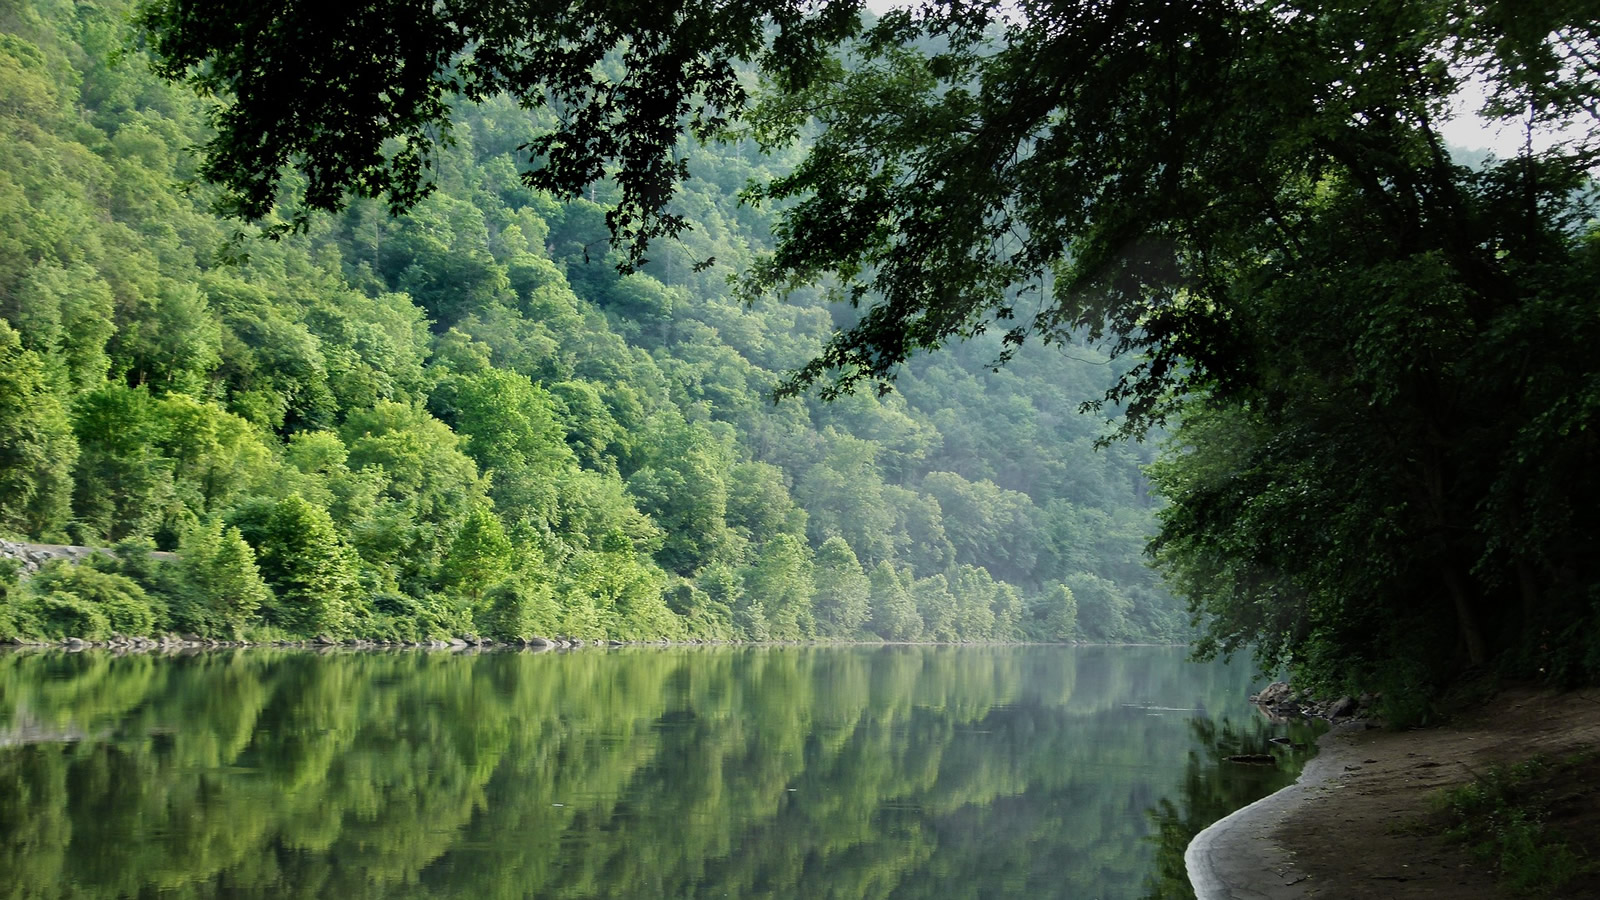 <h4>DELAWARE WATERSHED PROJECT</h4><h5>Goal: To better enable citizens, activists, officials and others to take positive action to improve the health of the Delaware River watershed.</h5>